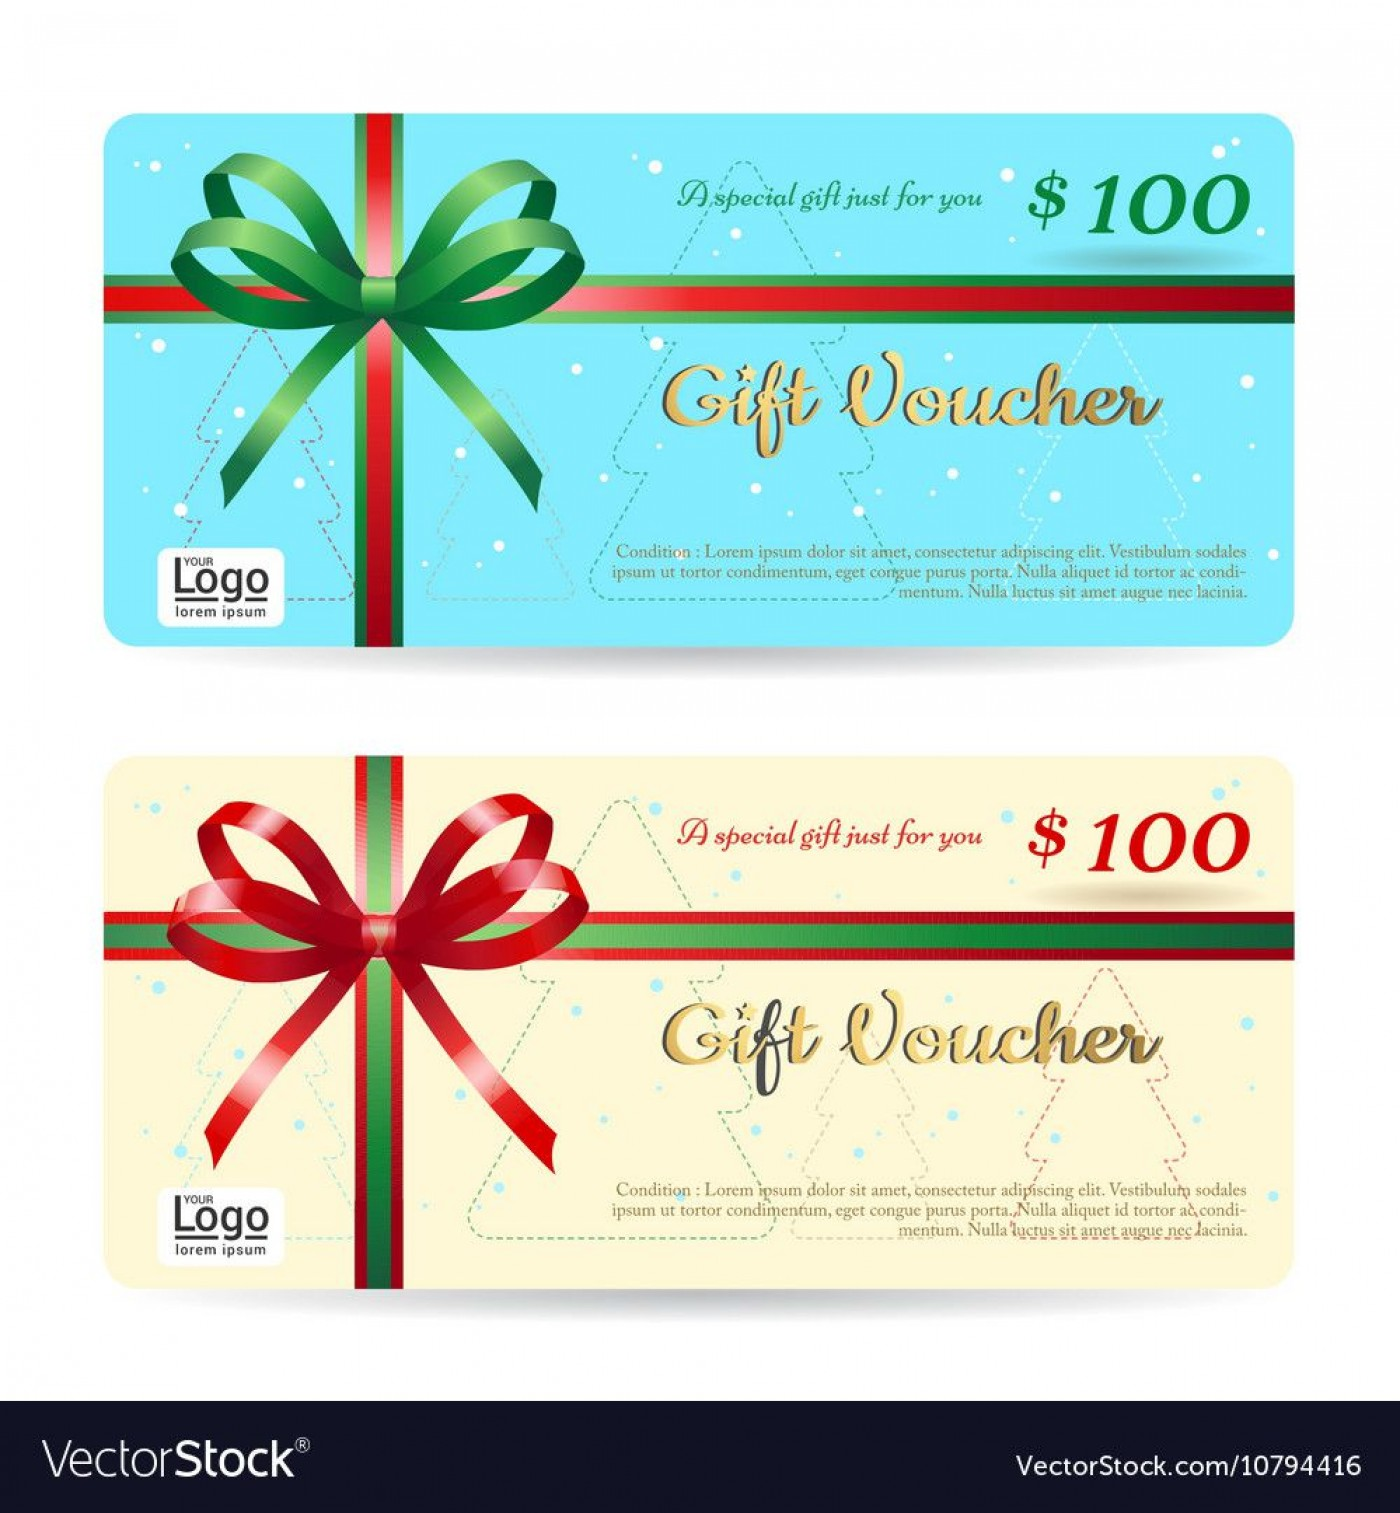 006 Frightening Template For Christma Gift Certificate Free Inspiration  Voucher Uk Editable Download Microsoft Word1400